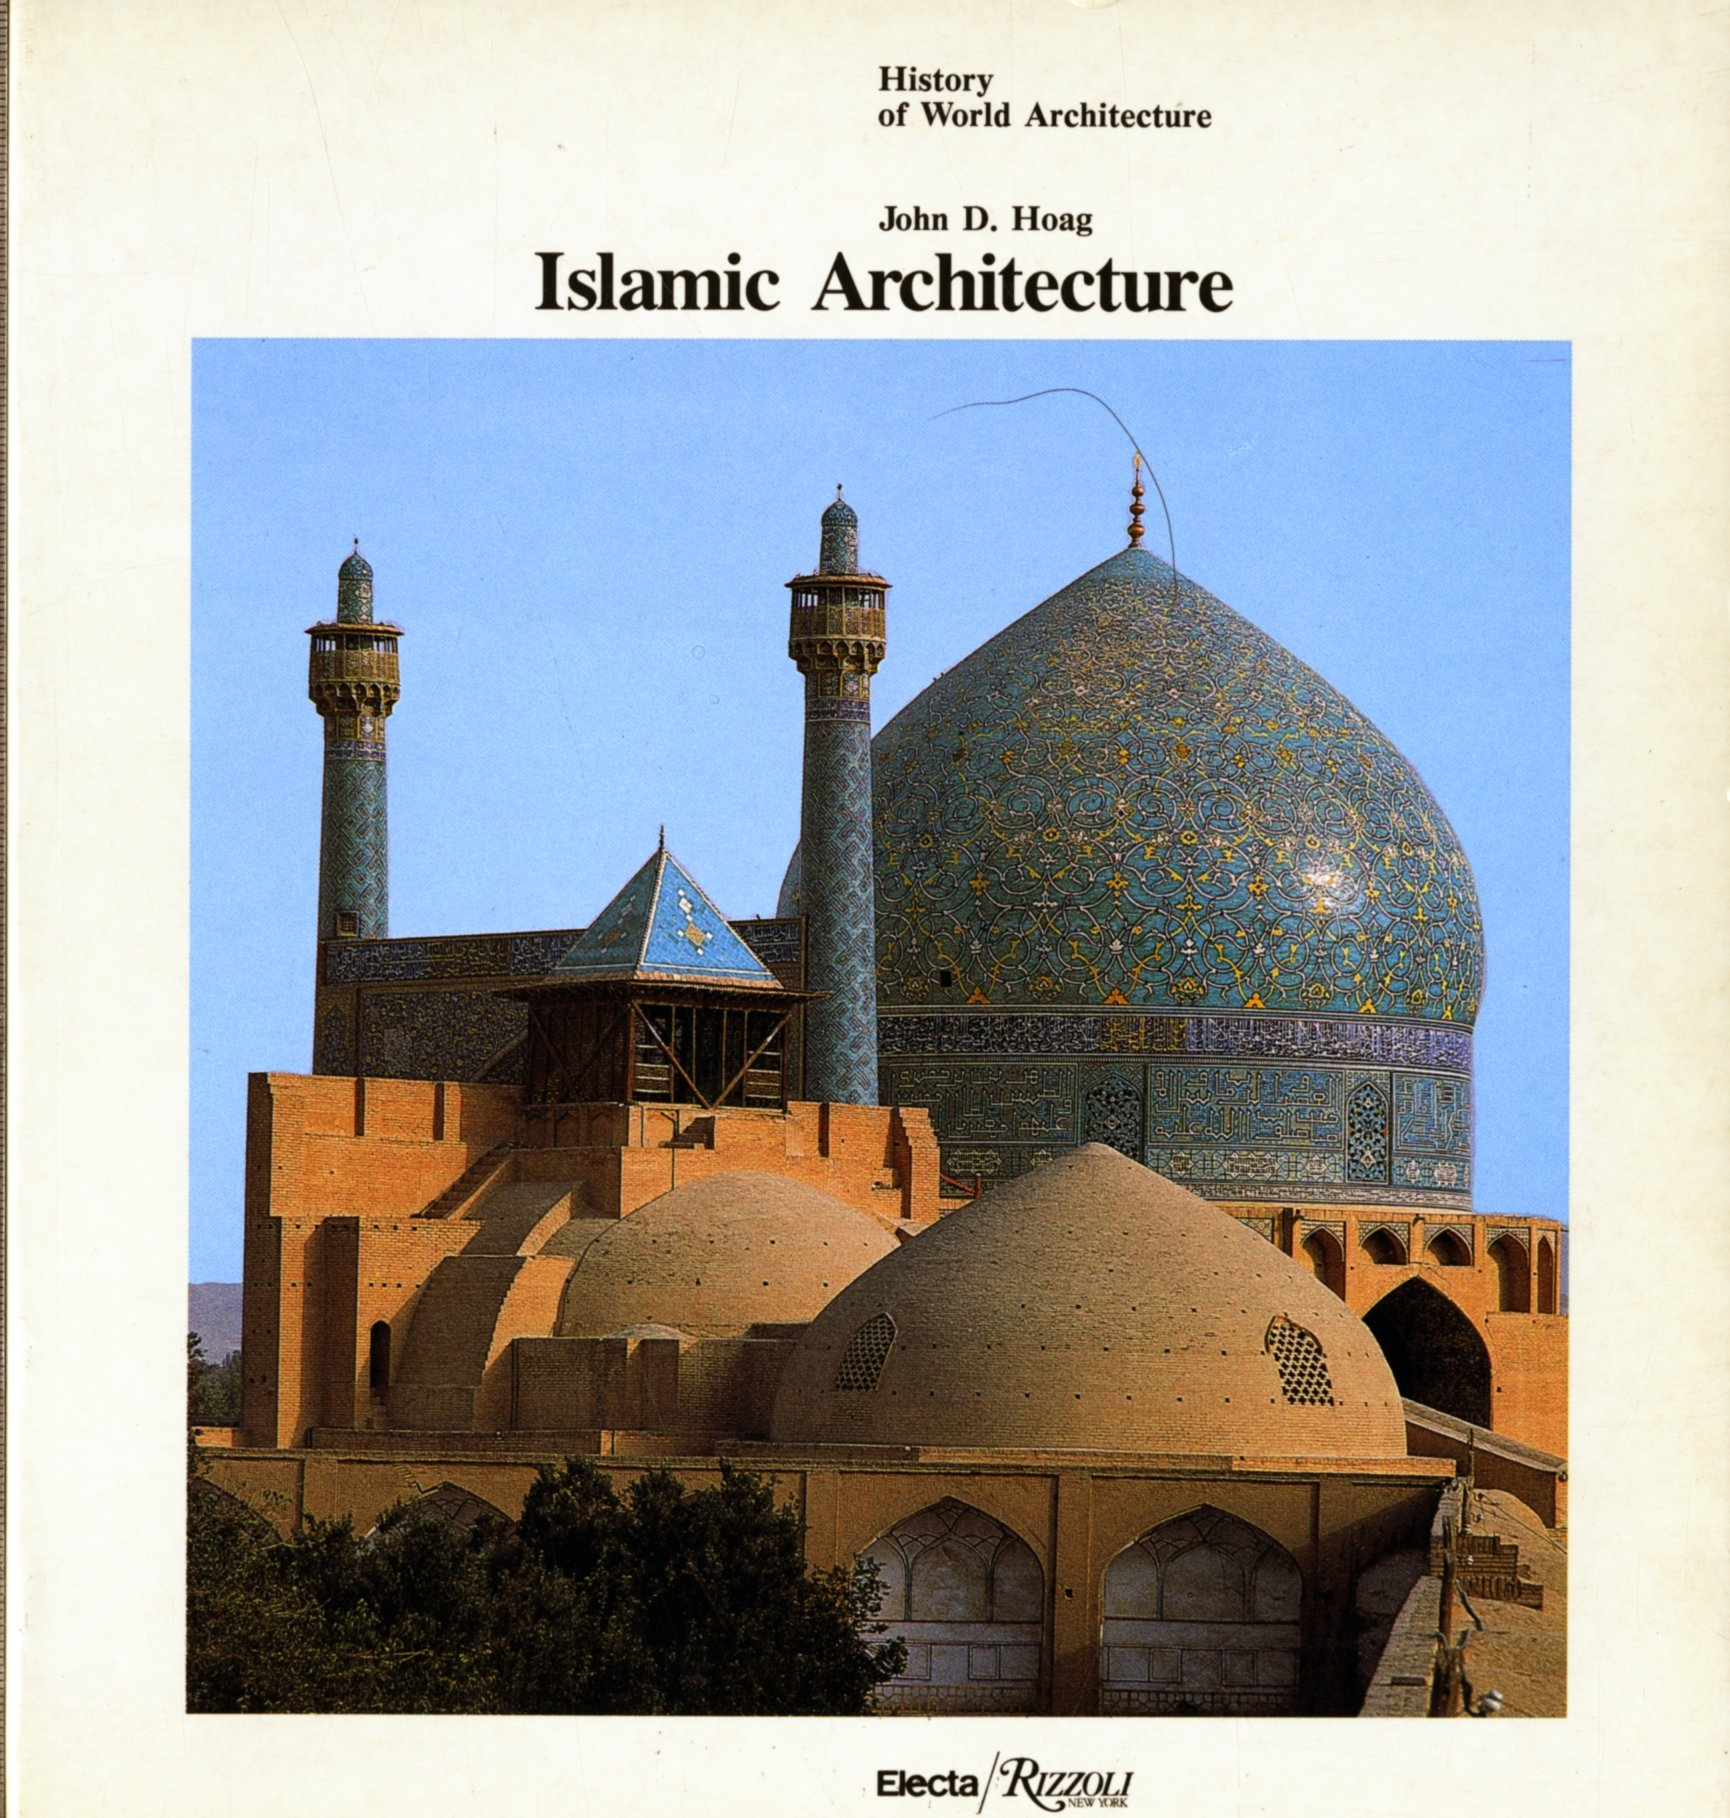 islamic architecture history of world architecture john d hoag